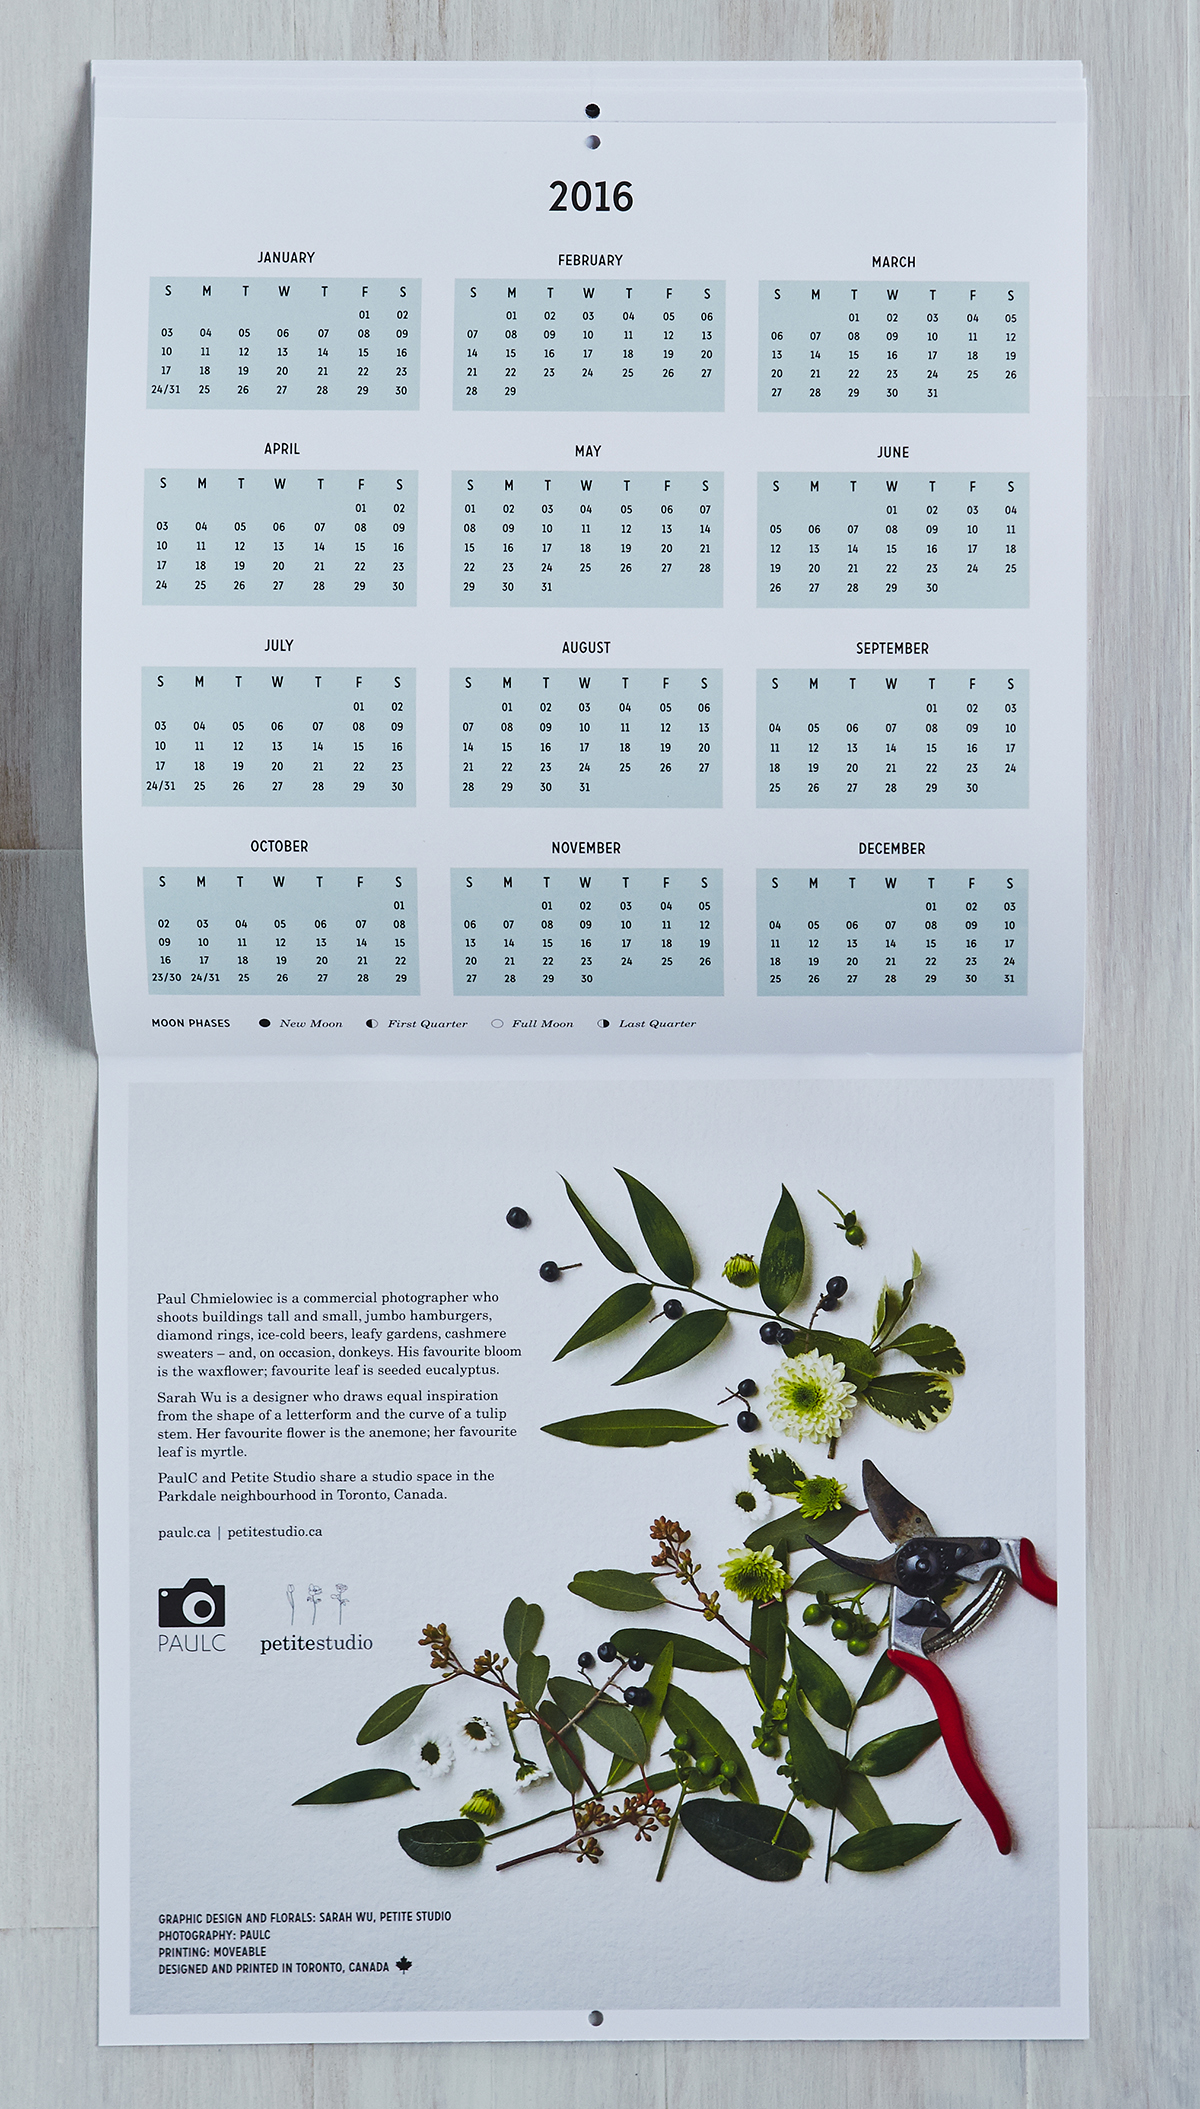 Petal + Leaf.  Calendar design collaboration with Paul C, 2015